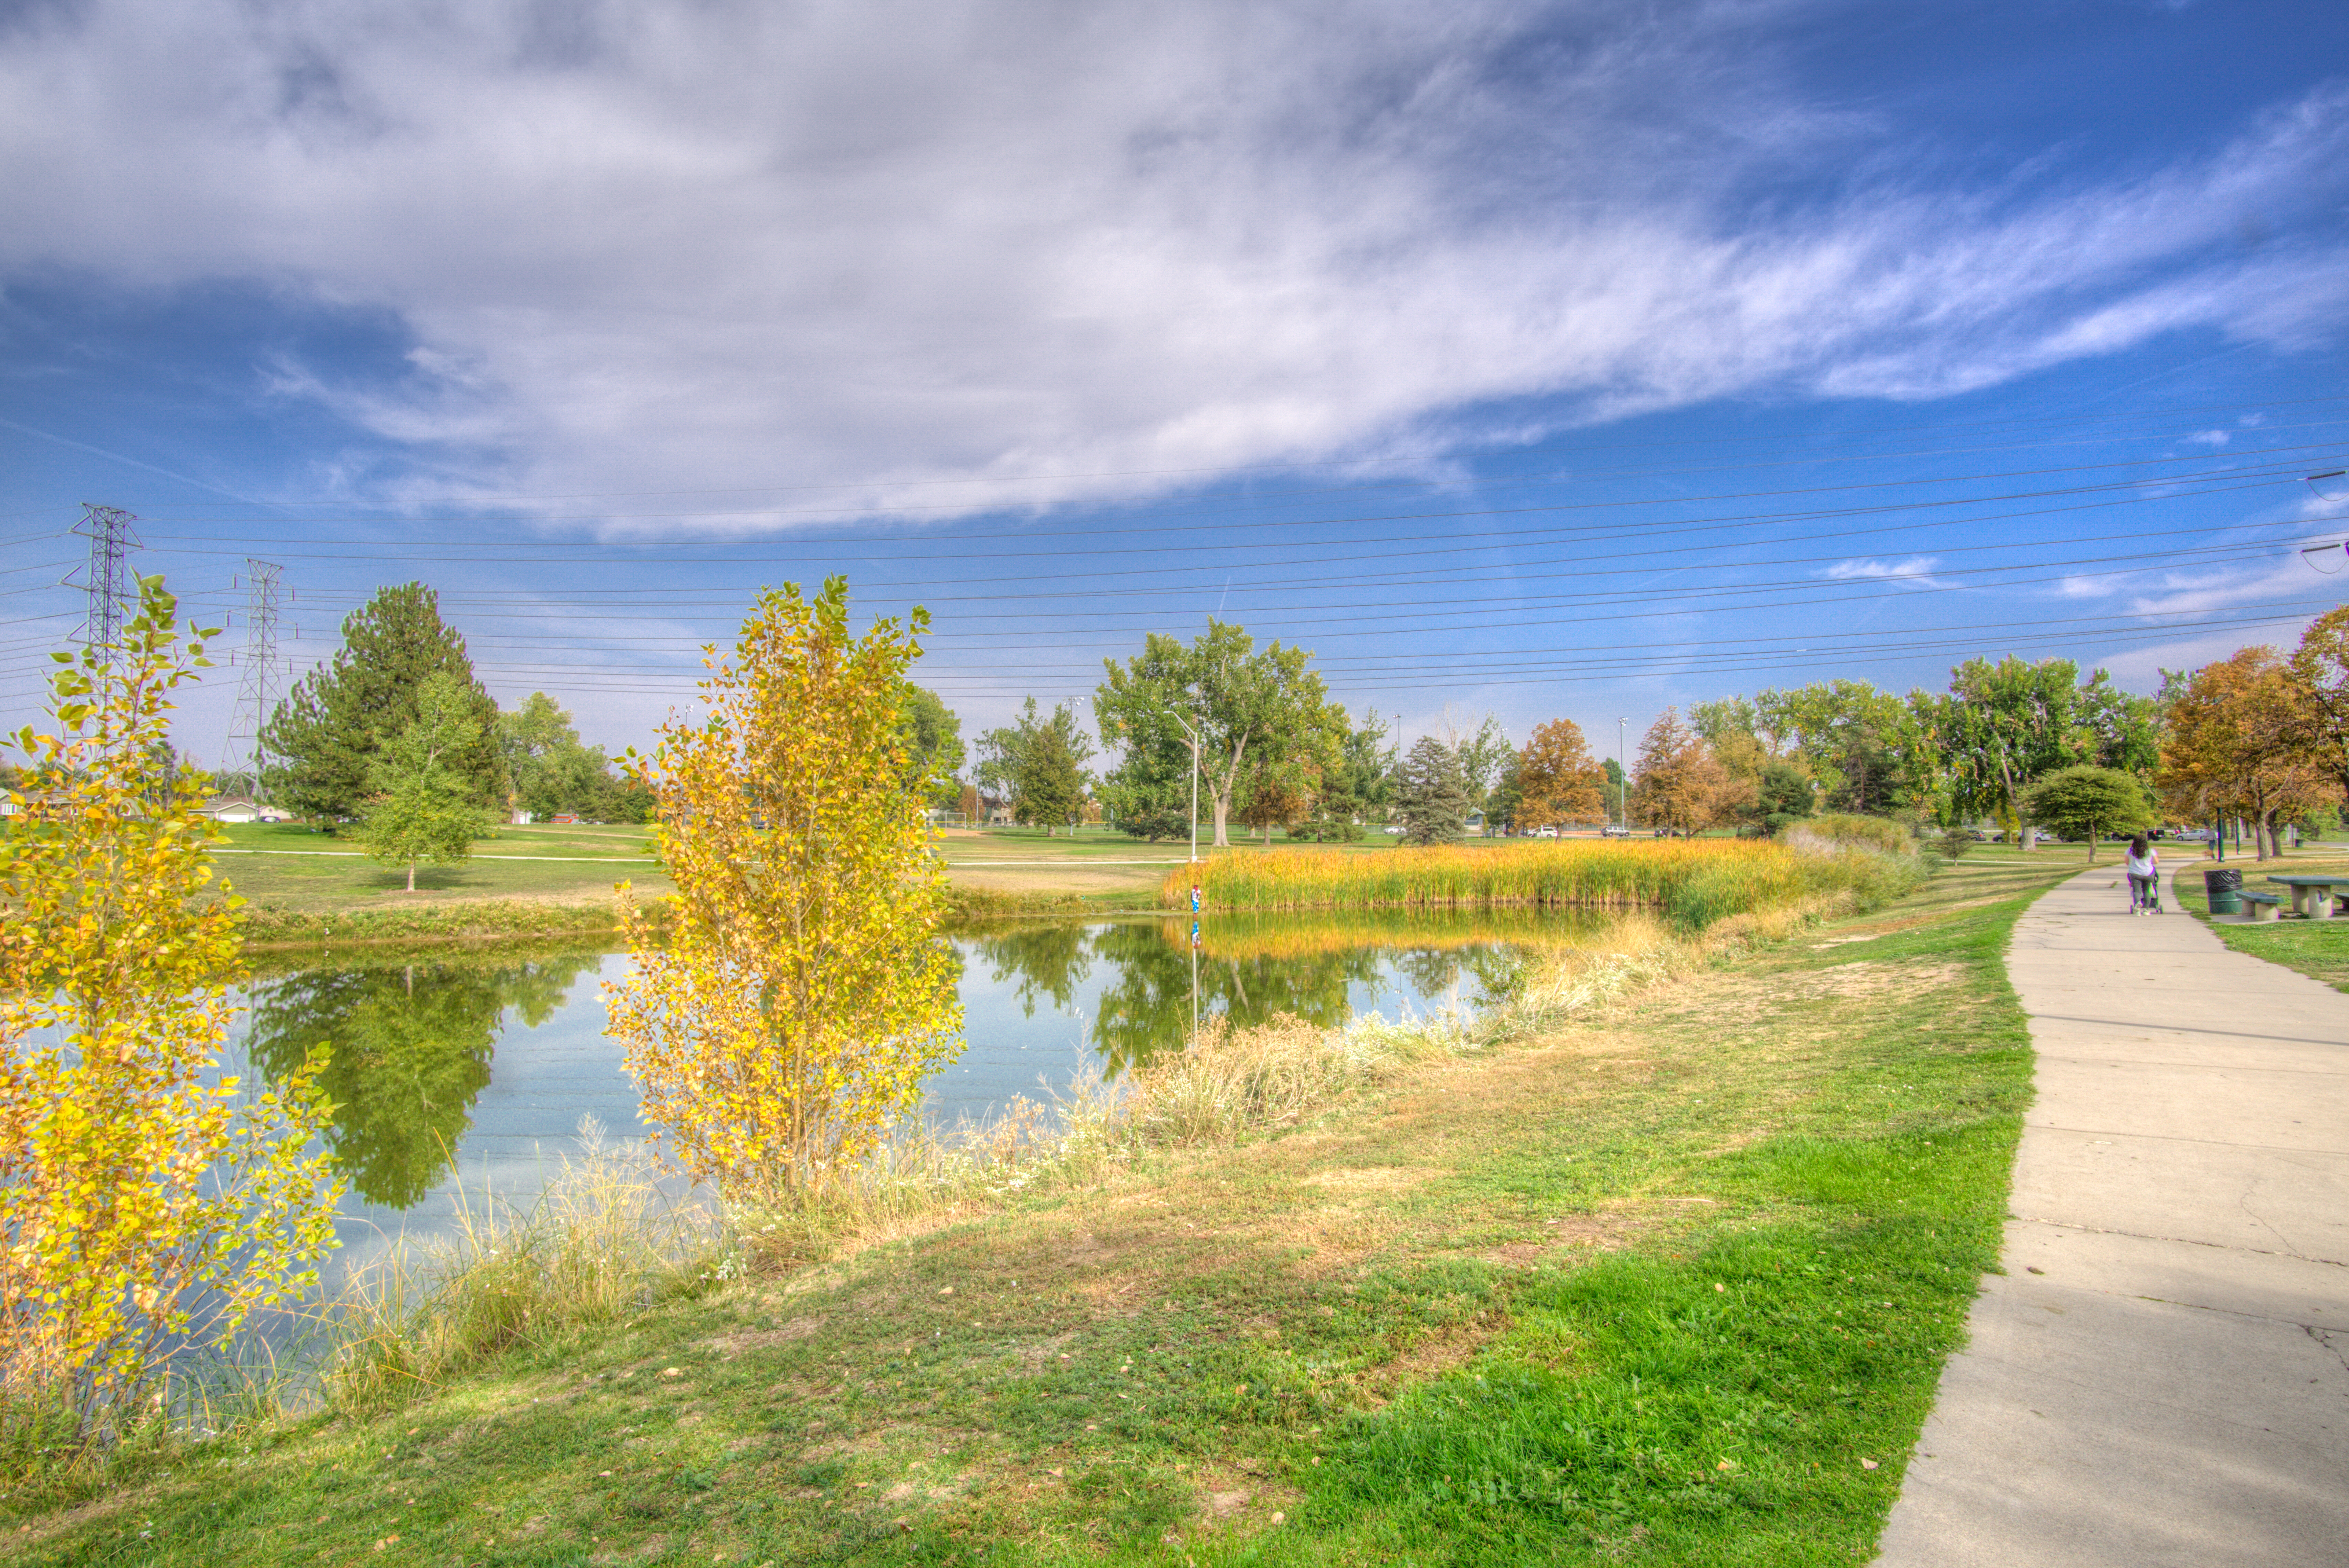 Cherry Creek bike path is minutes away